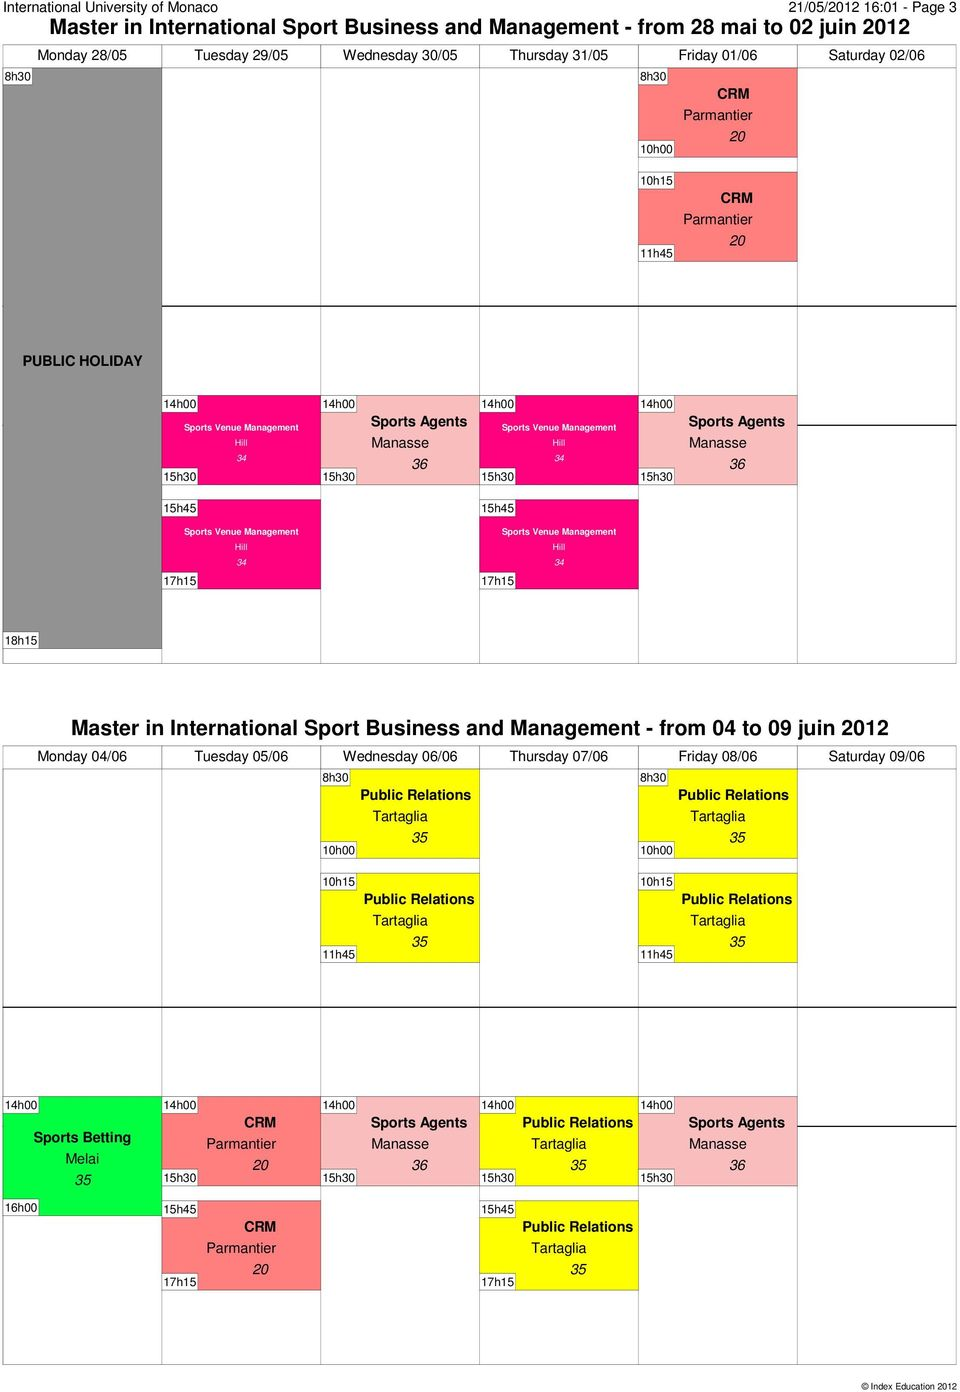 01/06 Saturday 02/06 18h15 Master in International Sport Business and Management - from 04 to 09 juin 12